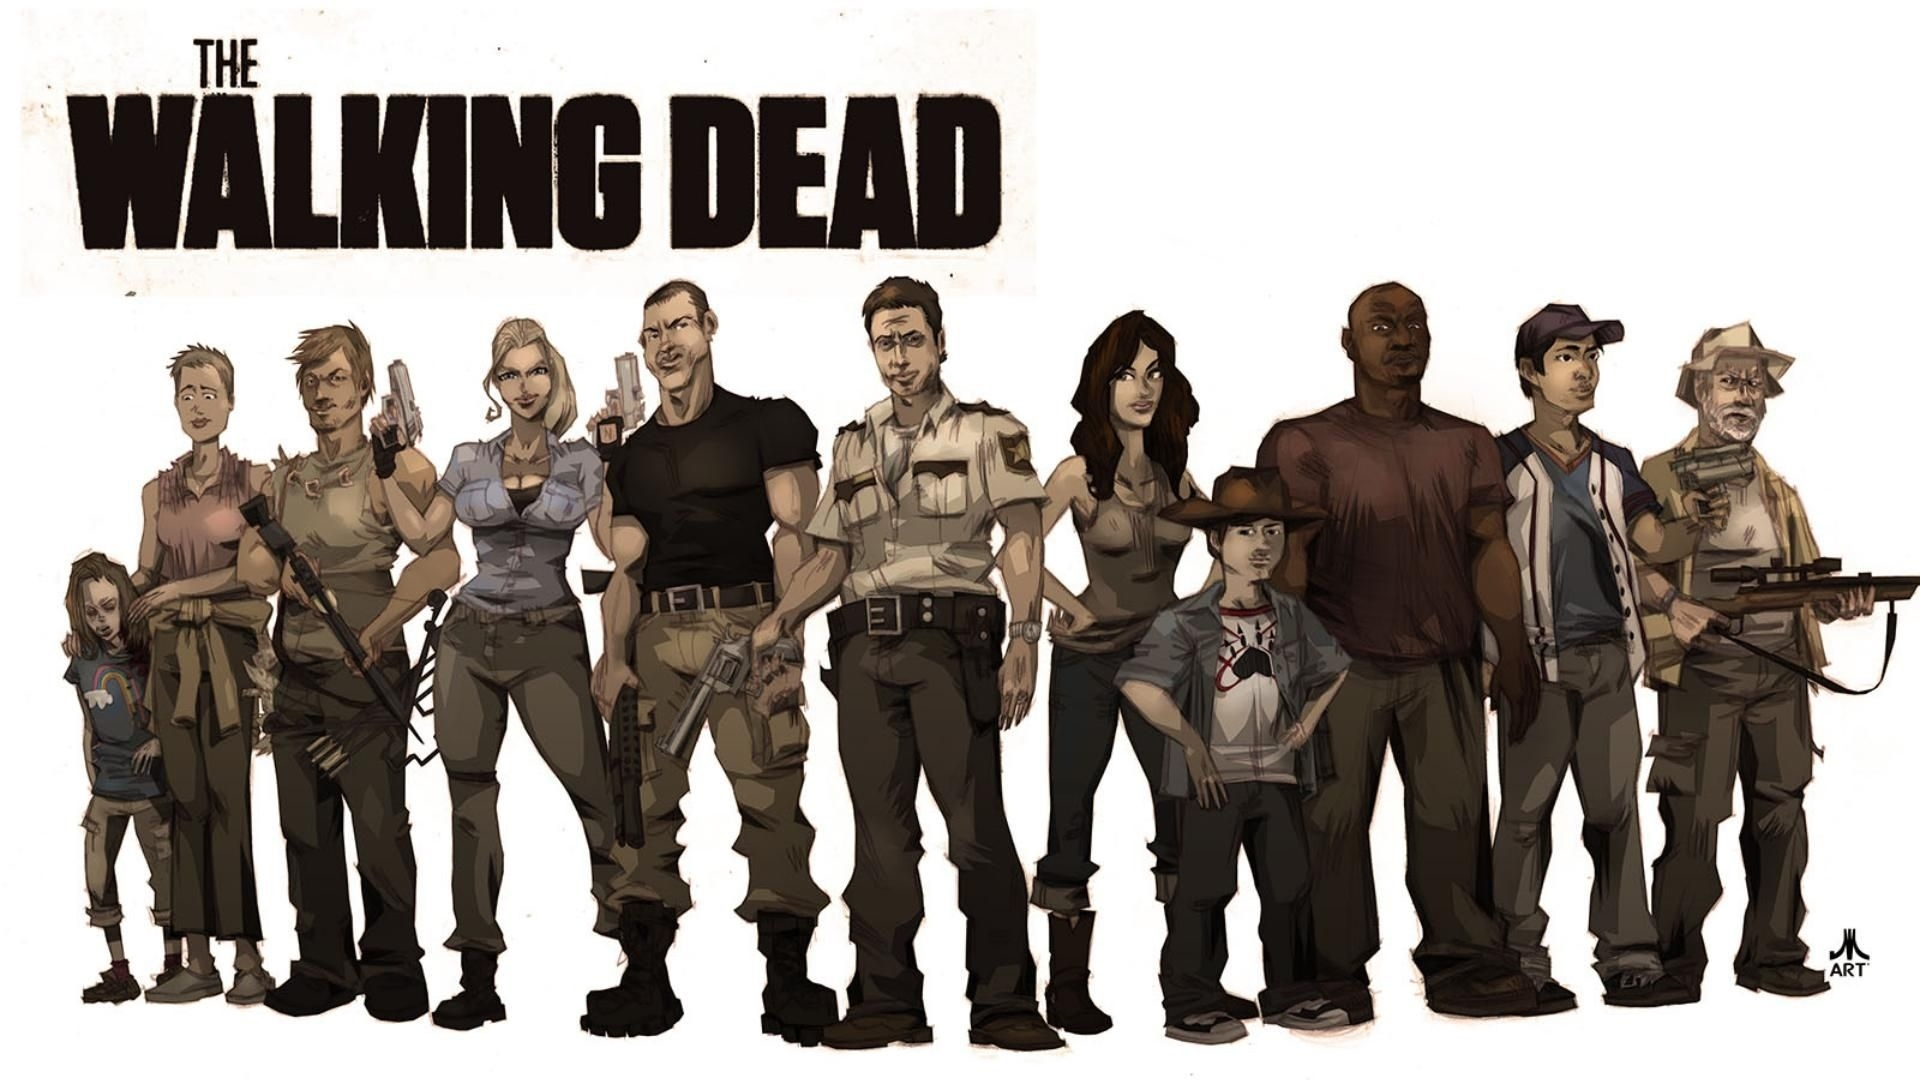 The Walking Dead background picture